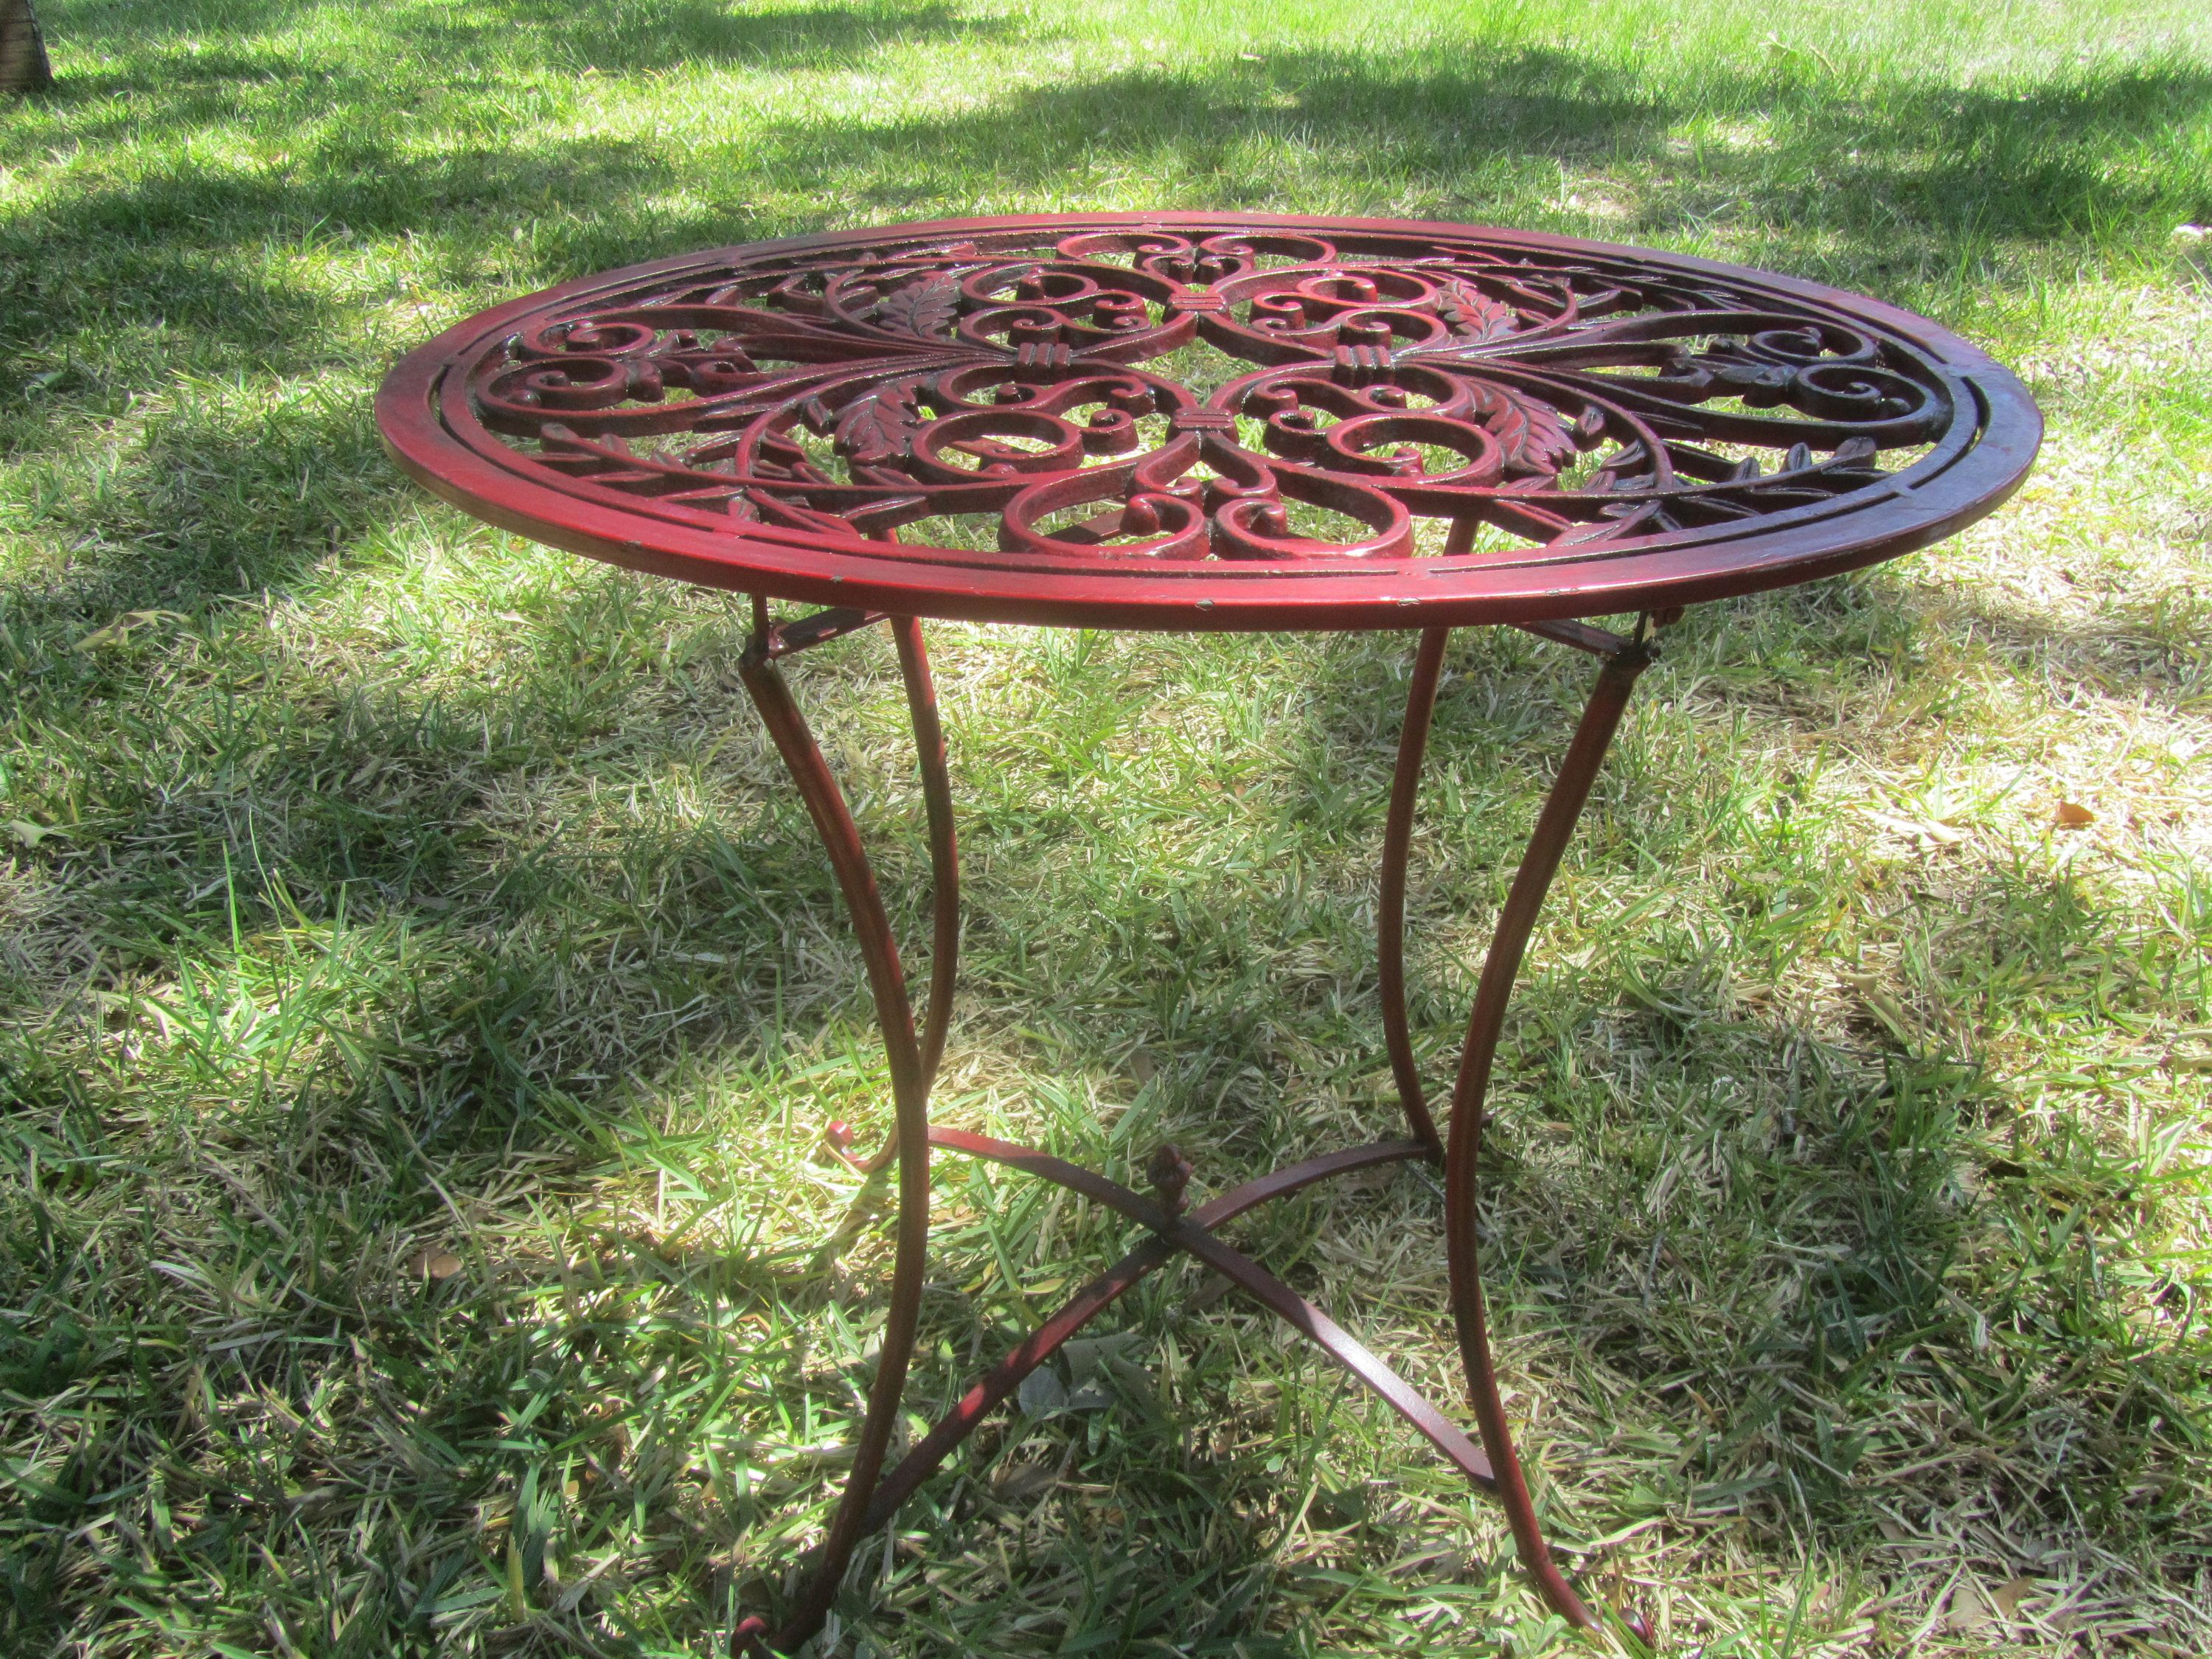 VINTAGE Side Table, Ornate Metal Folding Table, Shabby Chic decor ...